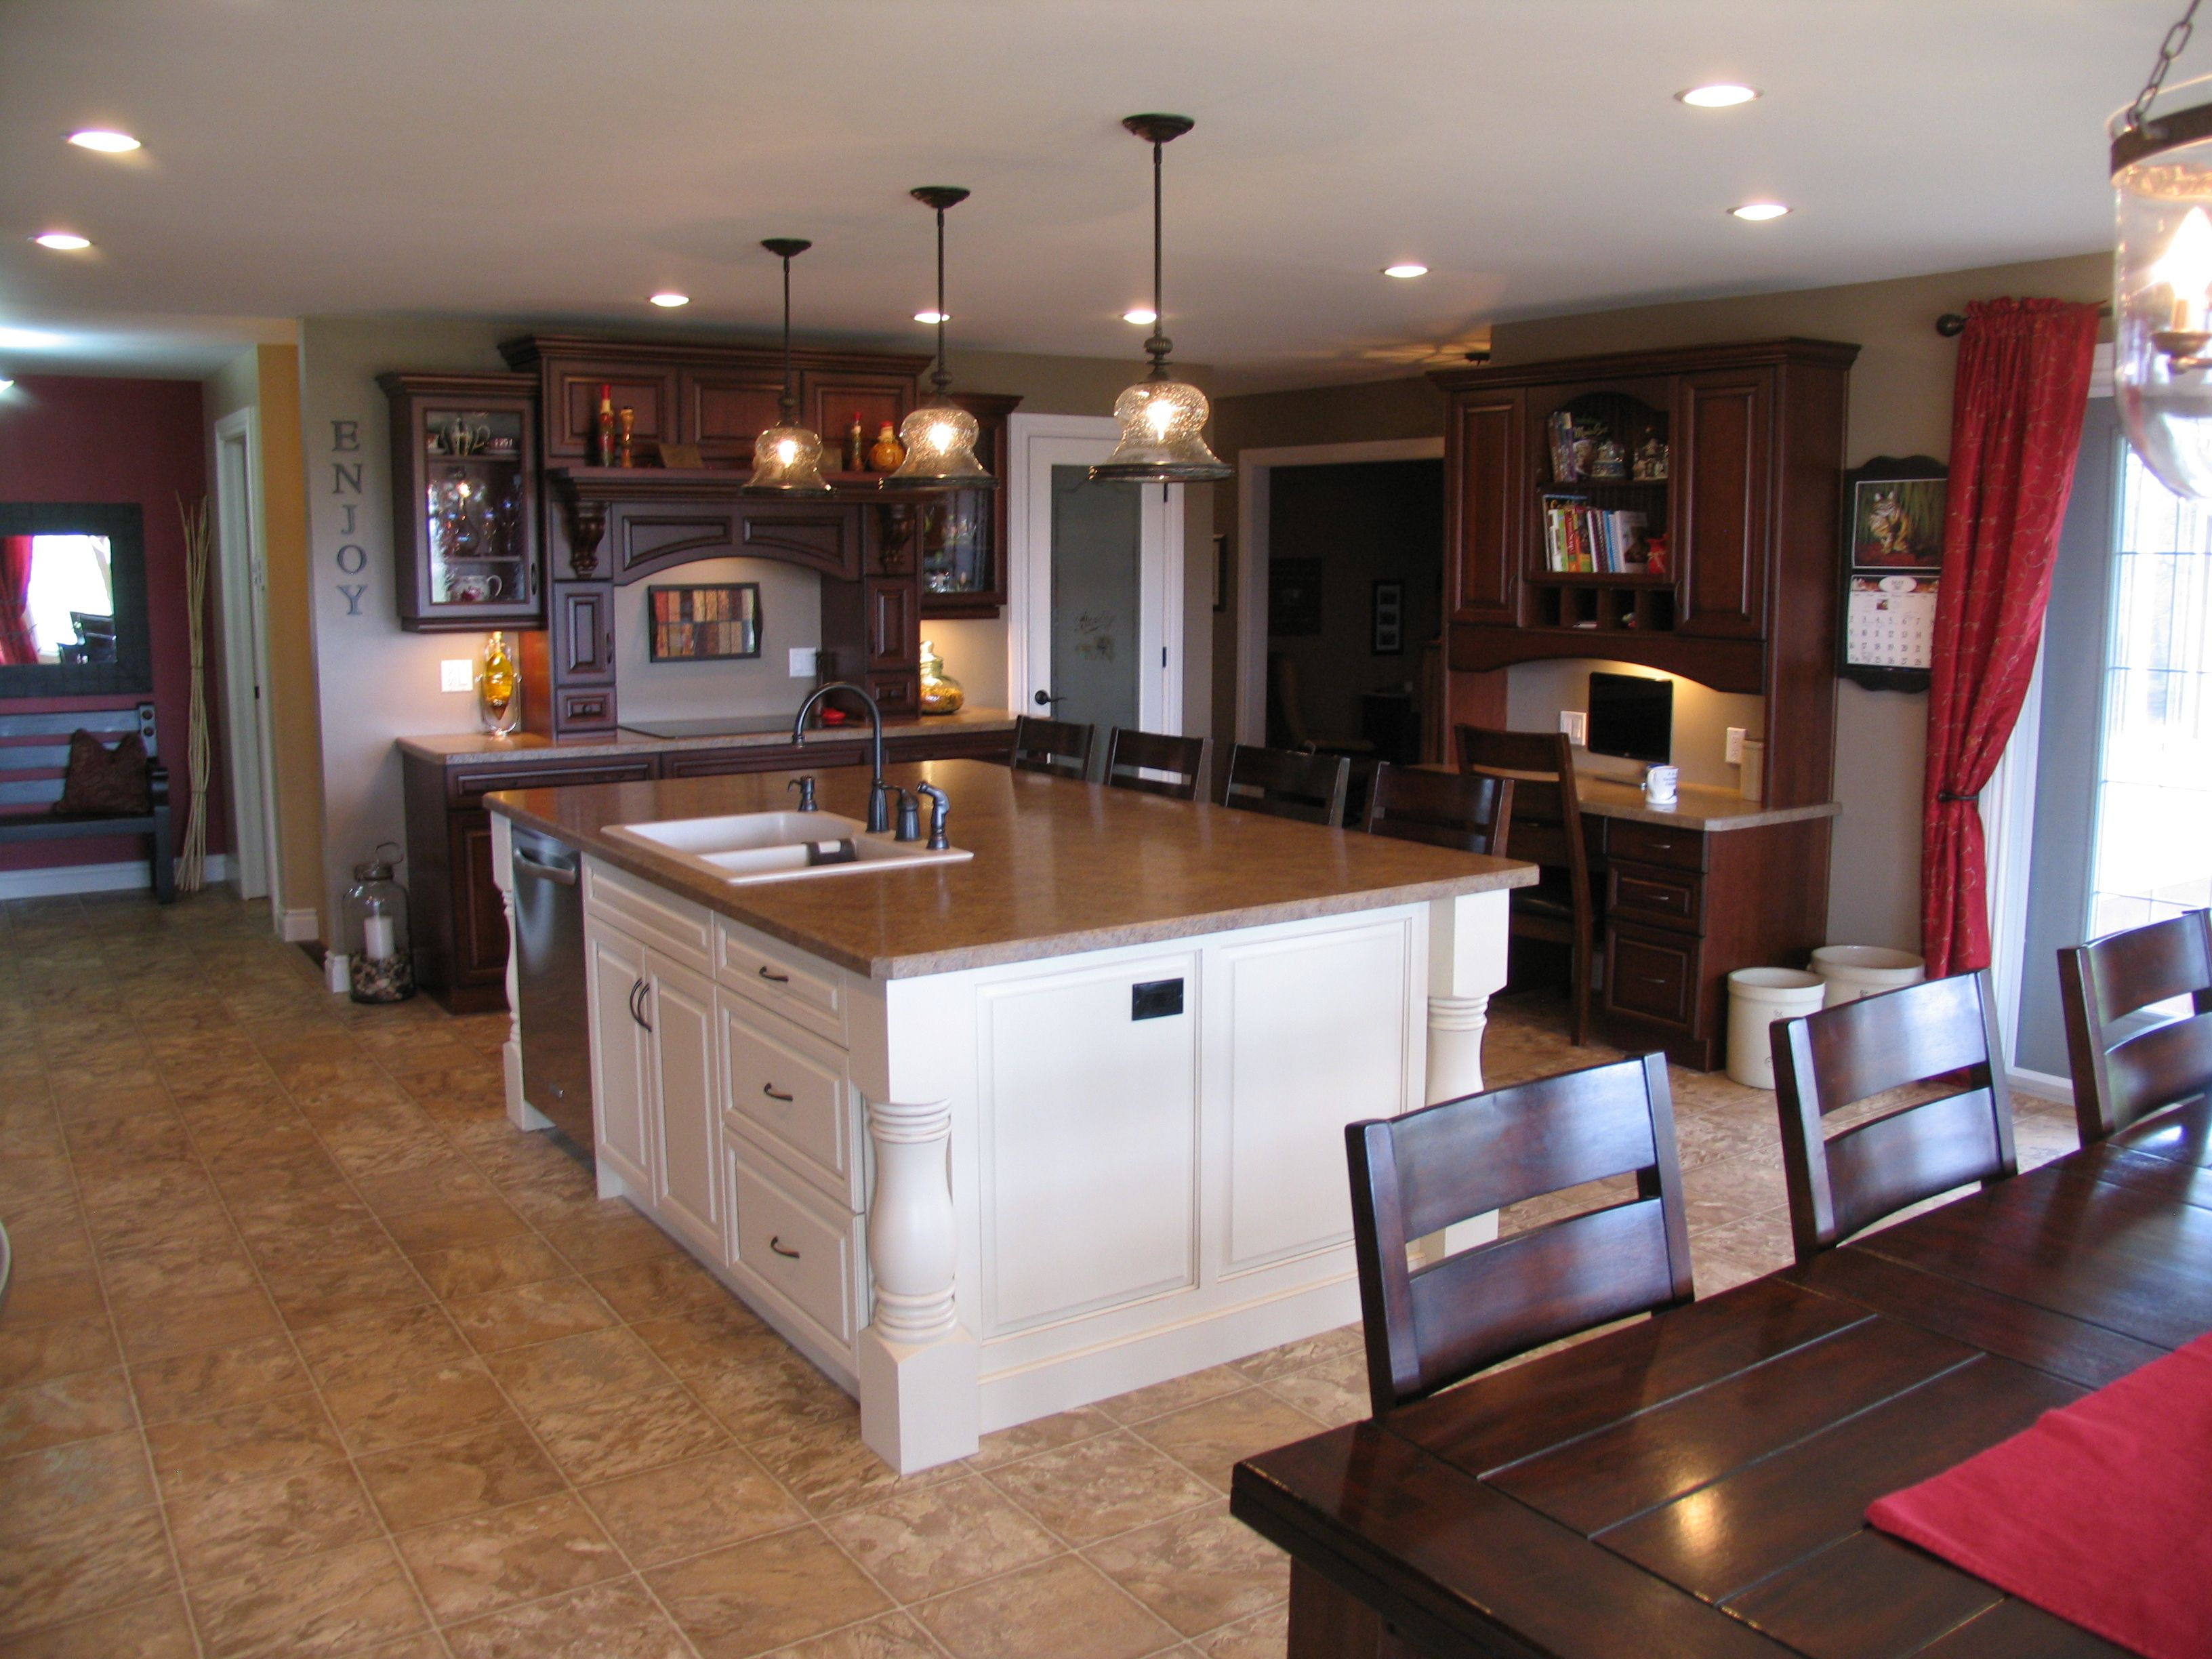 Kitchen Cabinets Cherry Saddlebrown Island Cabinets Maple Champagne Countertops